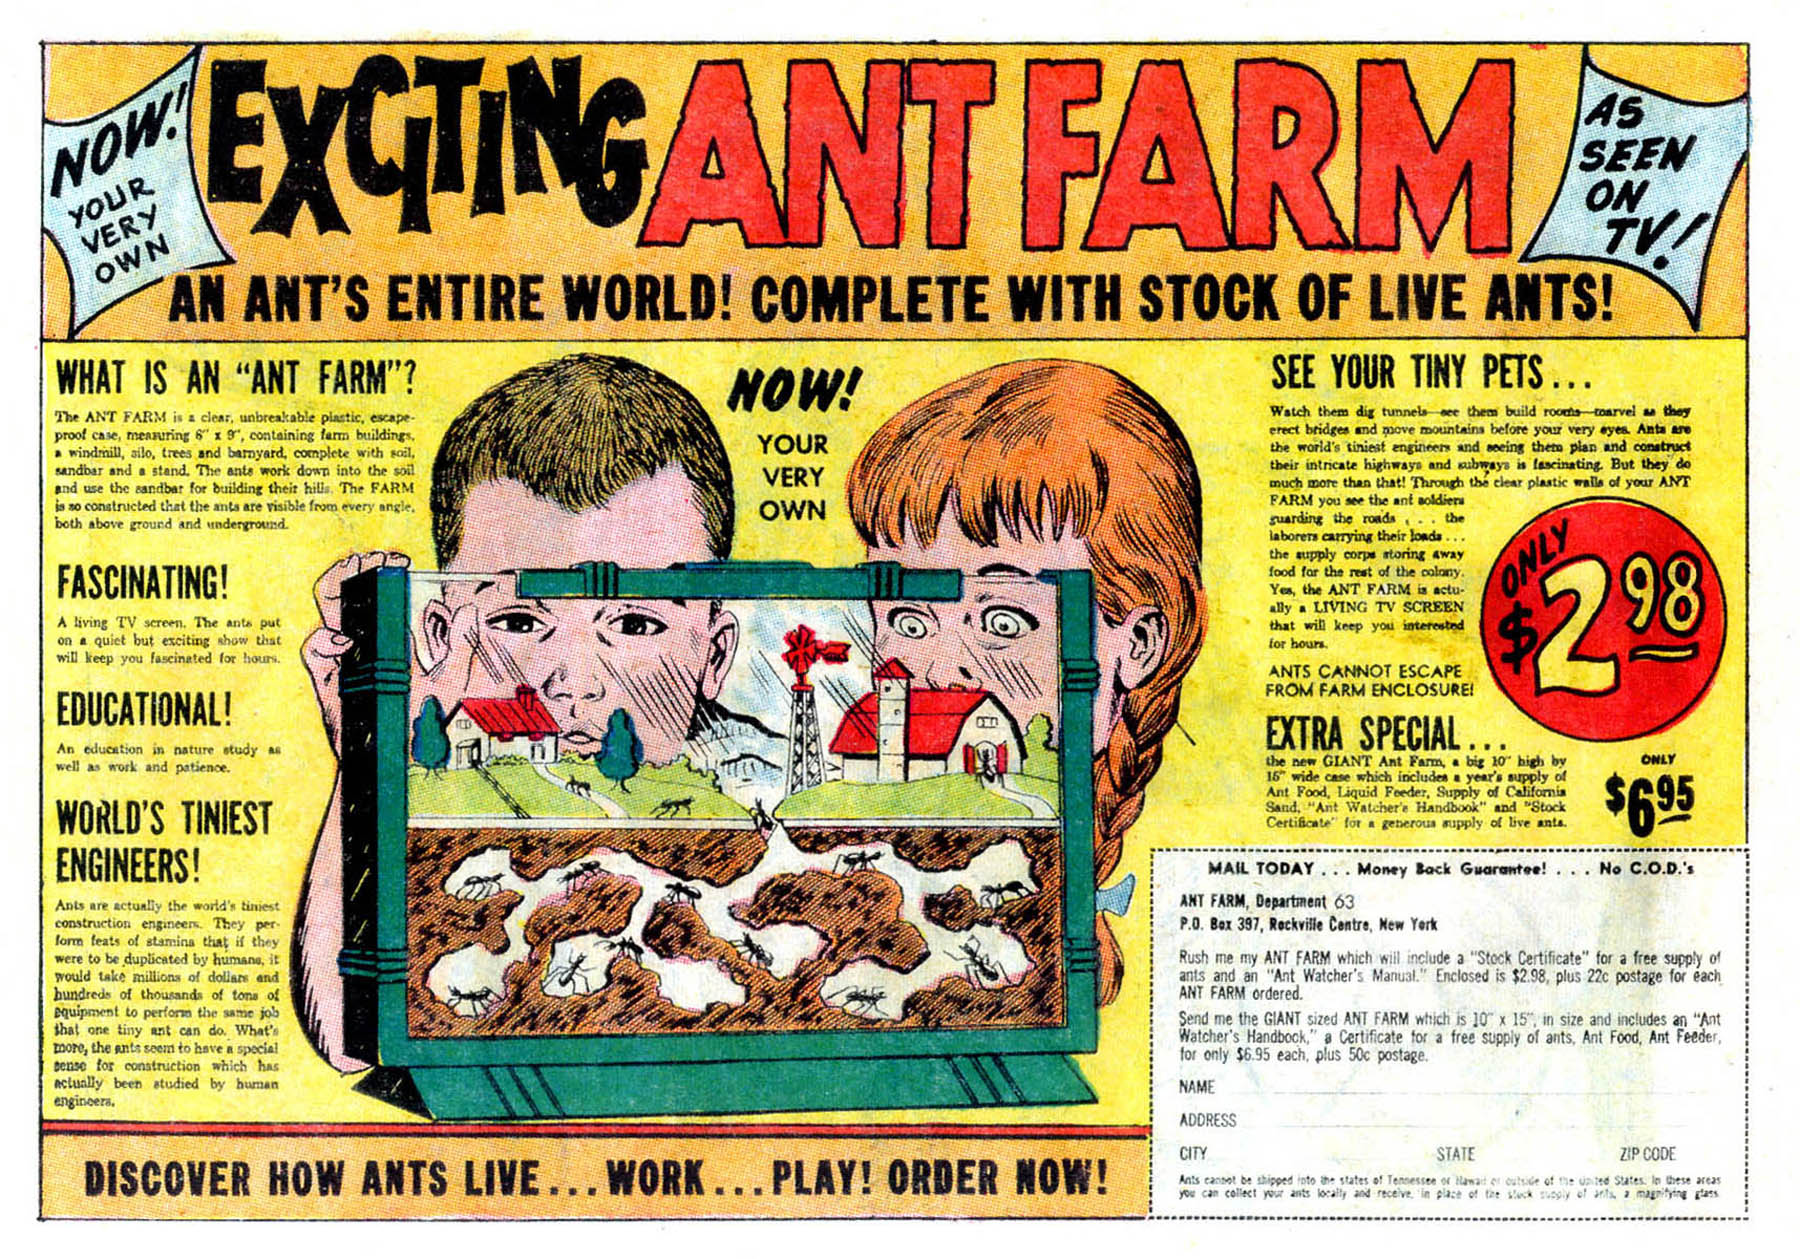 Exciting Ant Farm